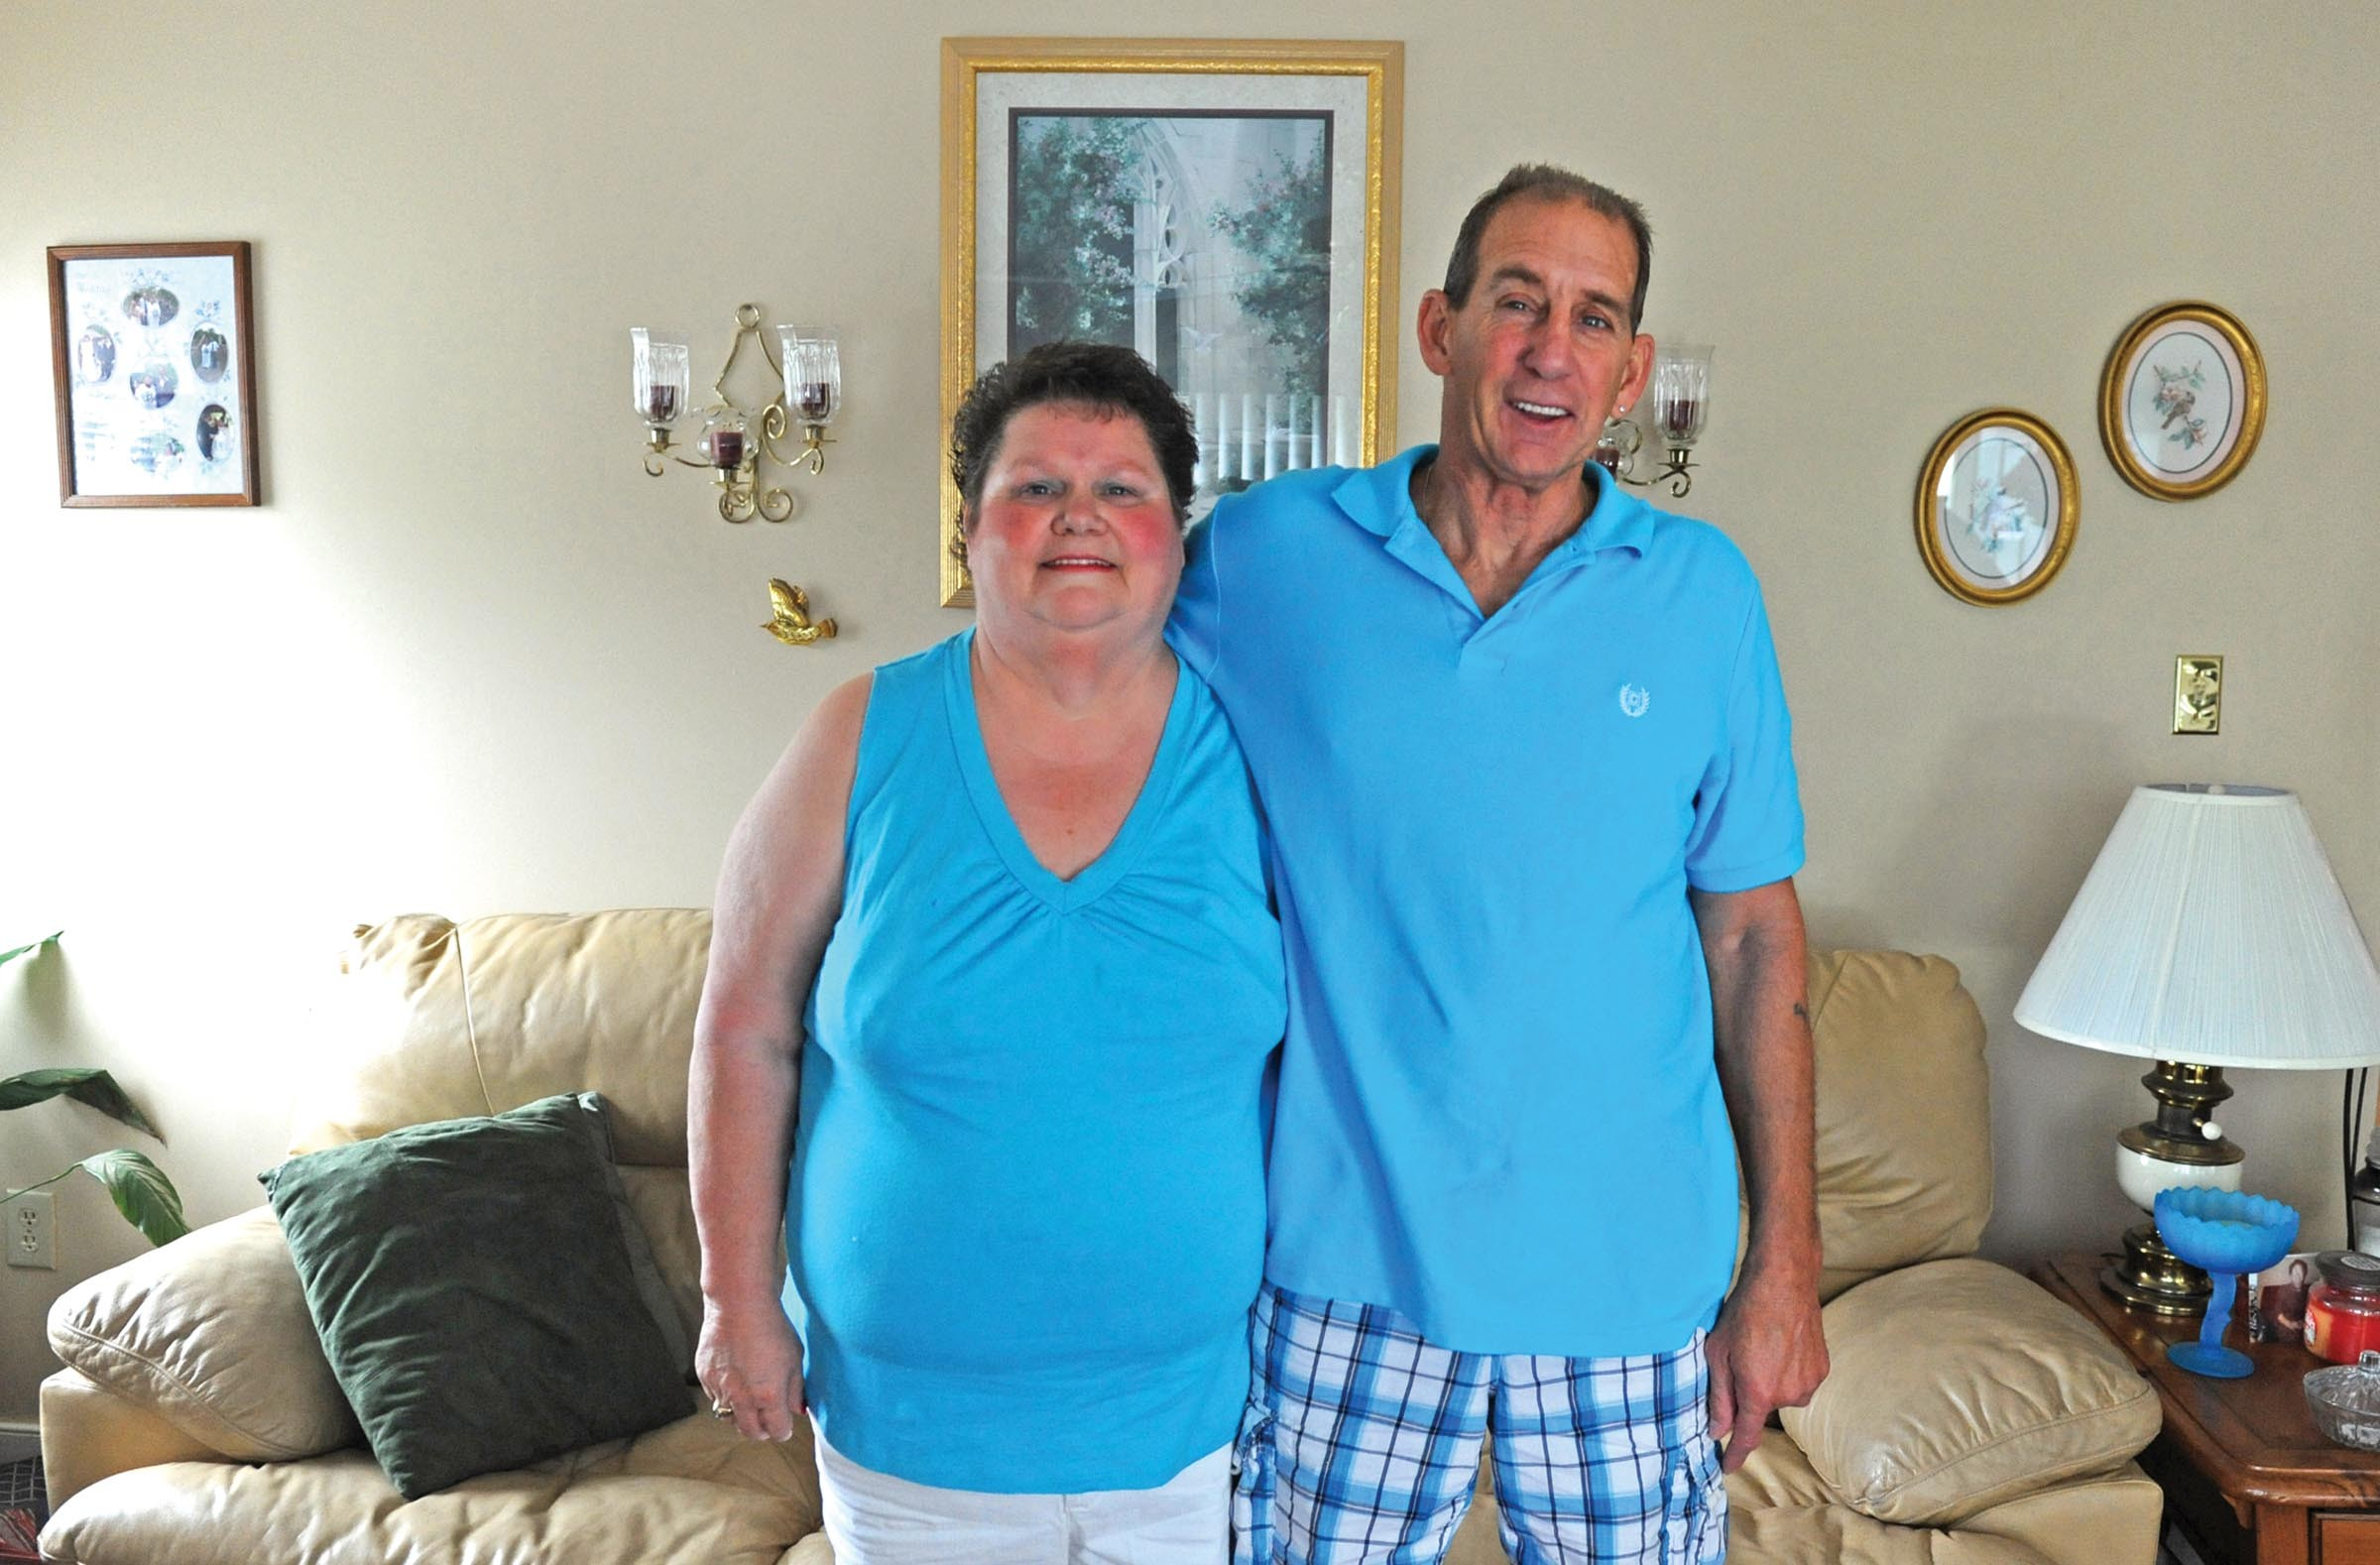 Laverne and James Pierce stopped attending the ROC last year after Laverne says an associate pastor told her husband that she was a gossip and no longer welcome. - SCOTT ELMQUIST